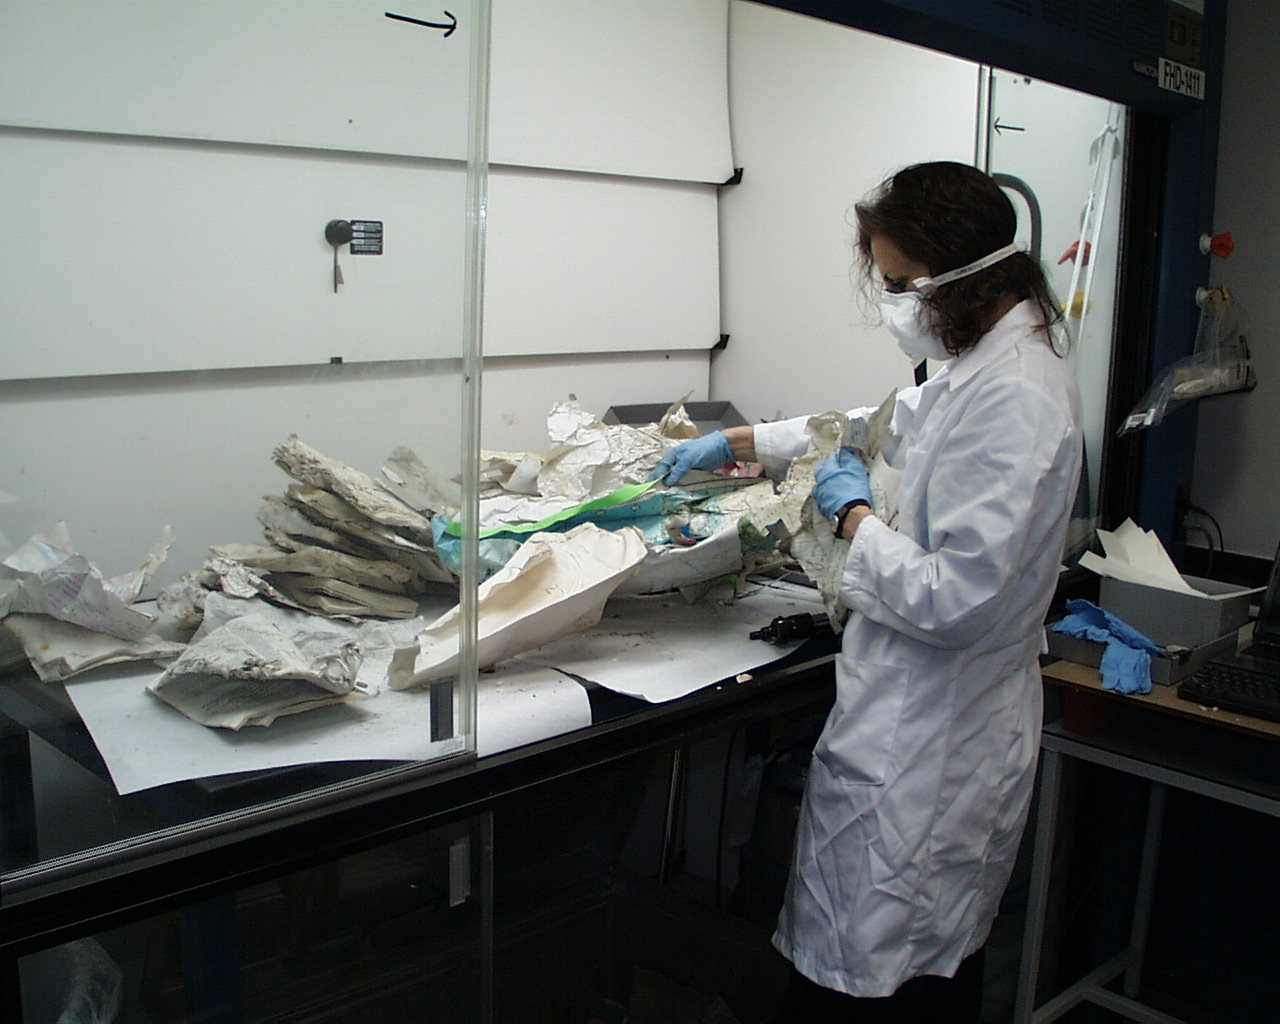 Conservation staff wore gloves and masks, and worked under ventilation hoods.